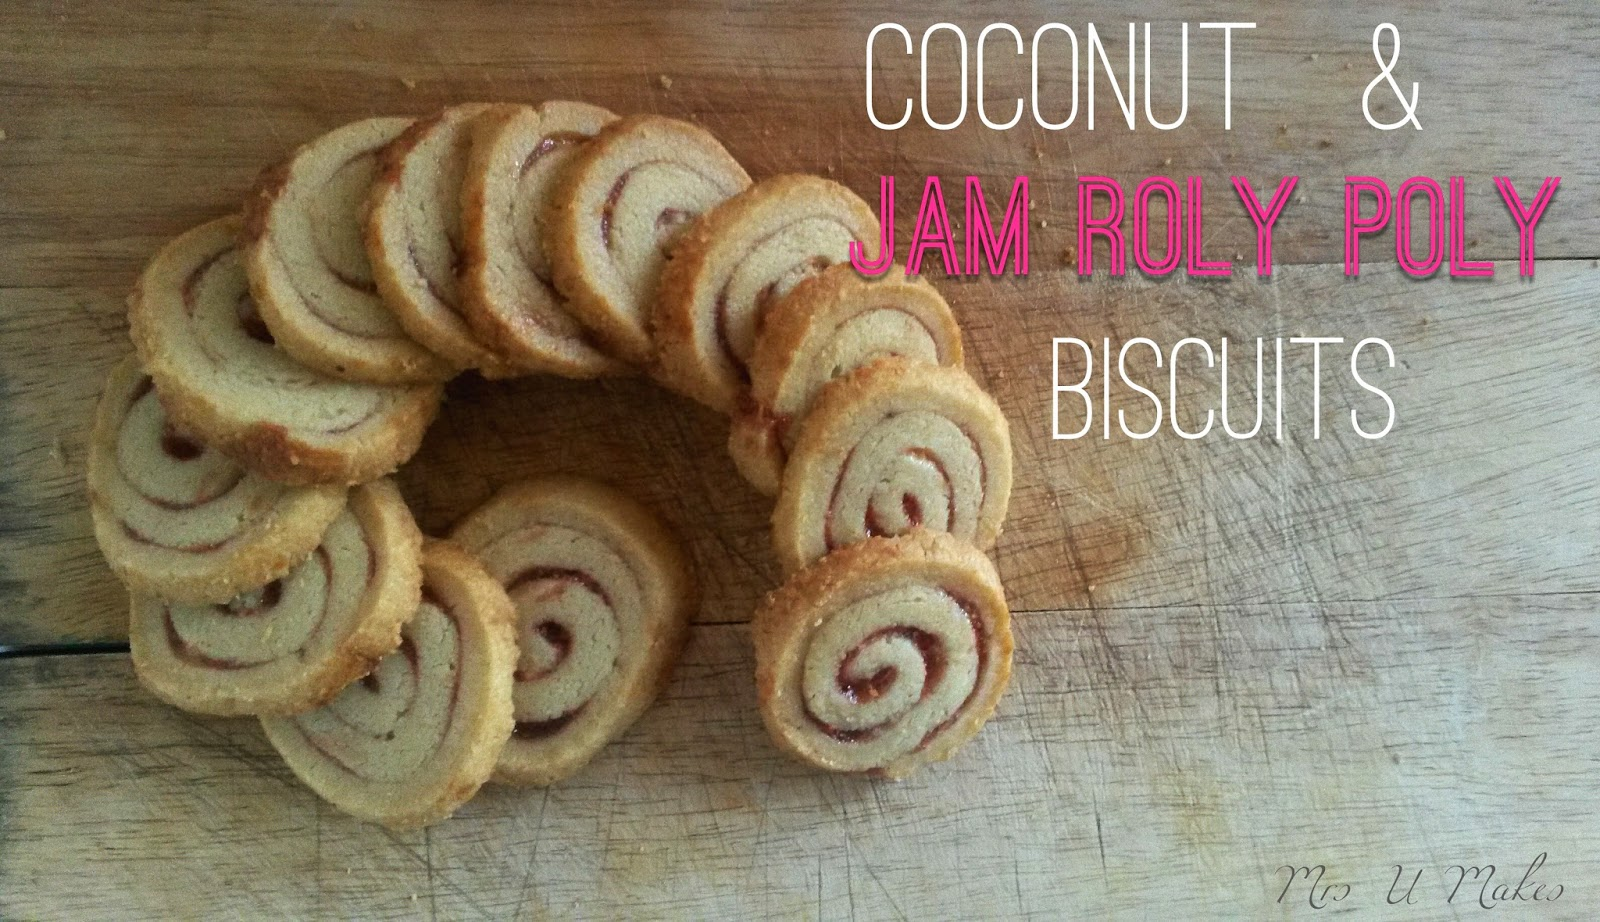 Coconut and Jam Roly Poly Biscuits by Mrs U Makes